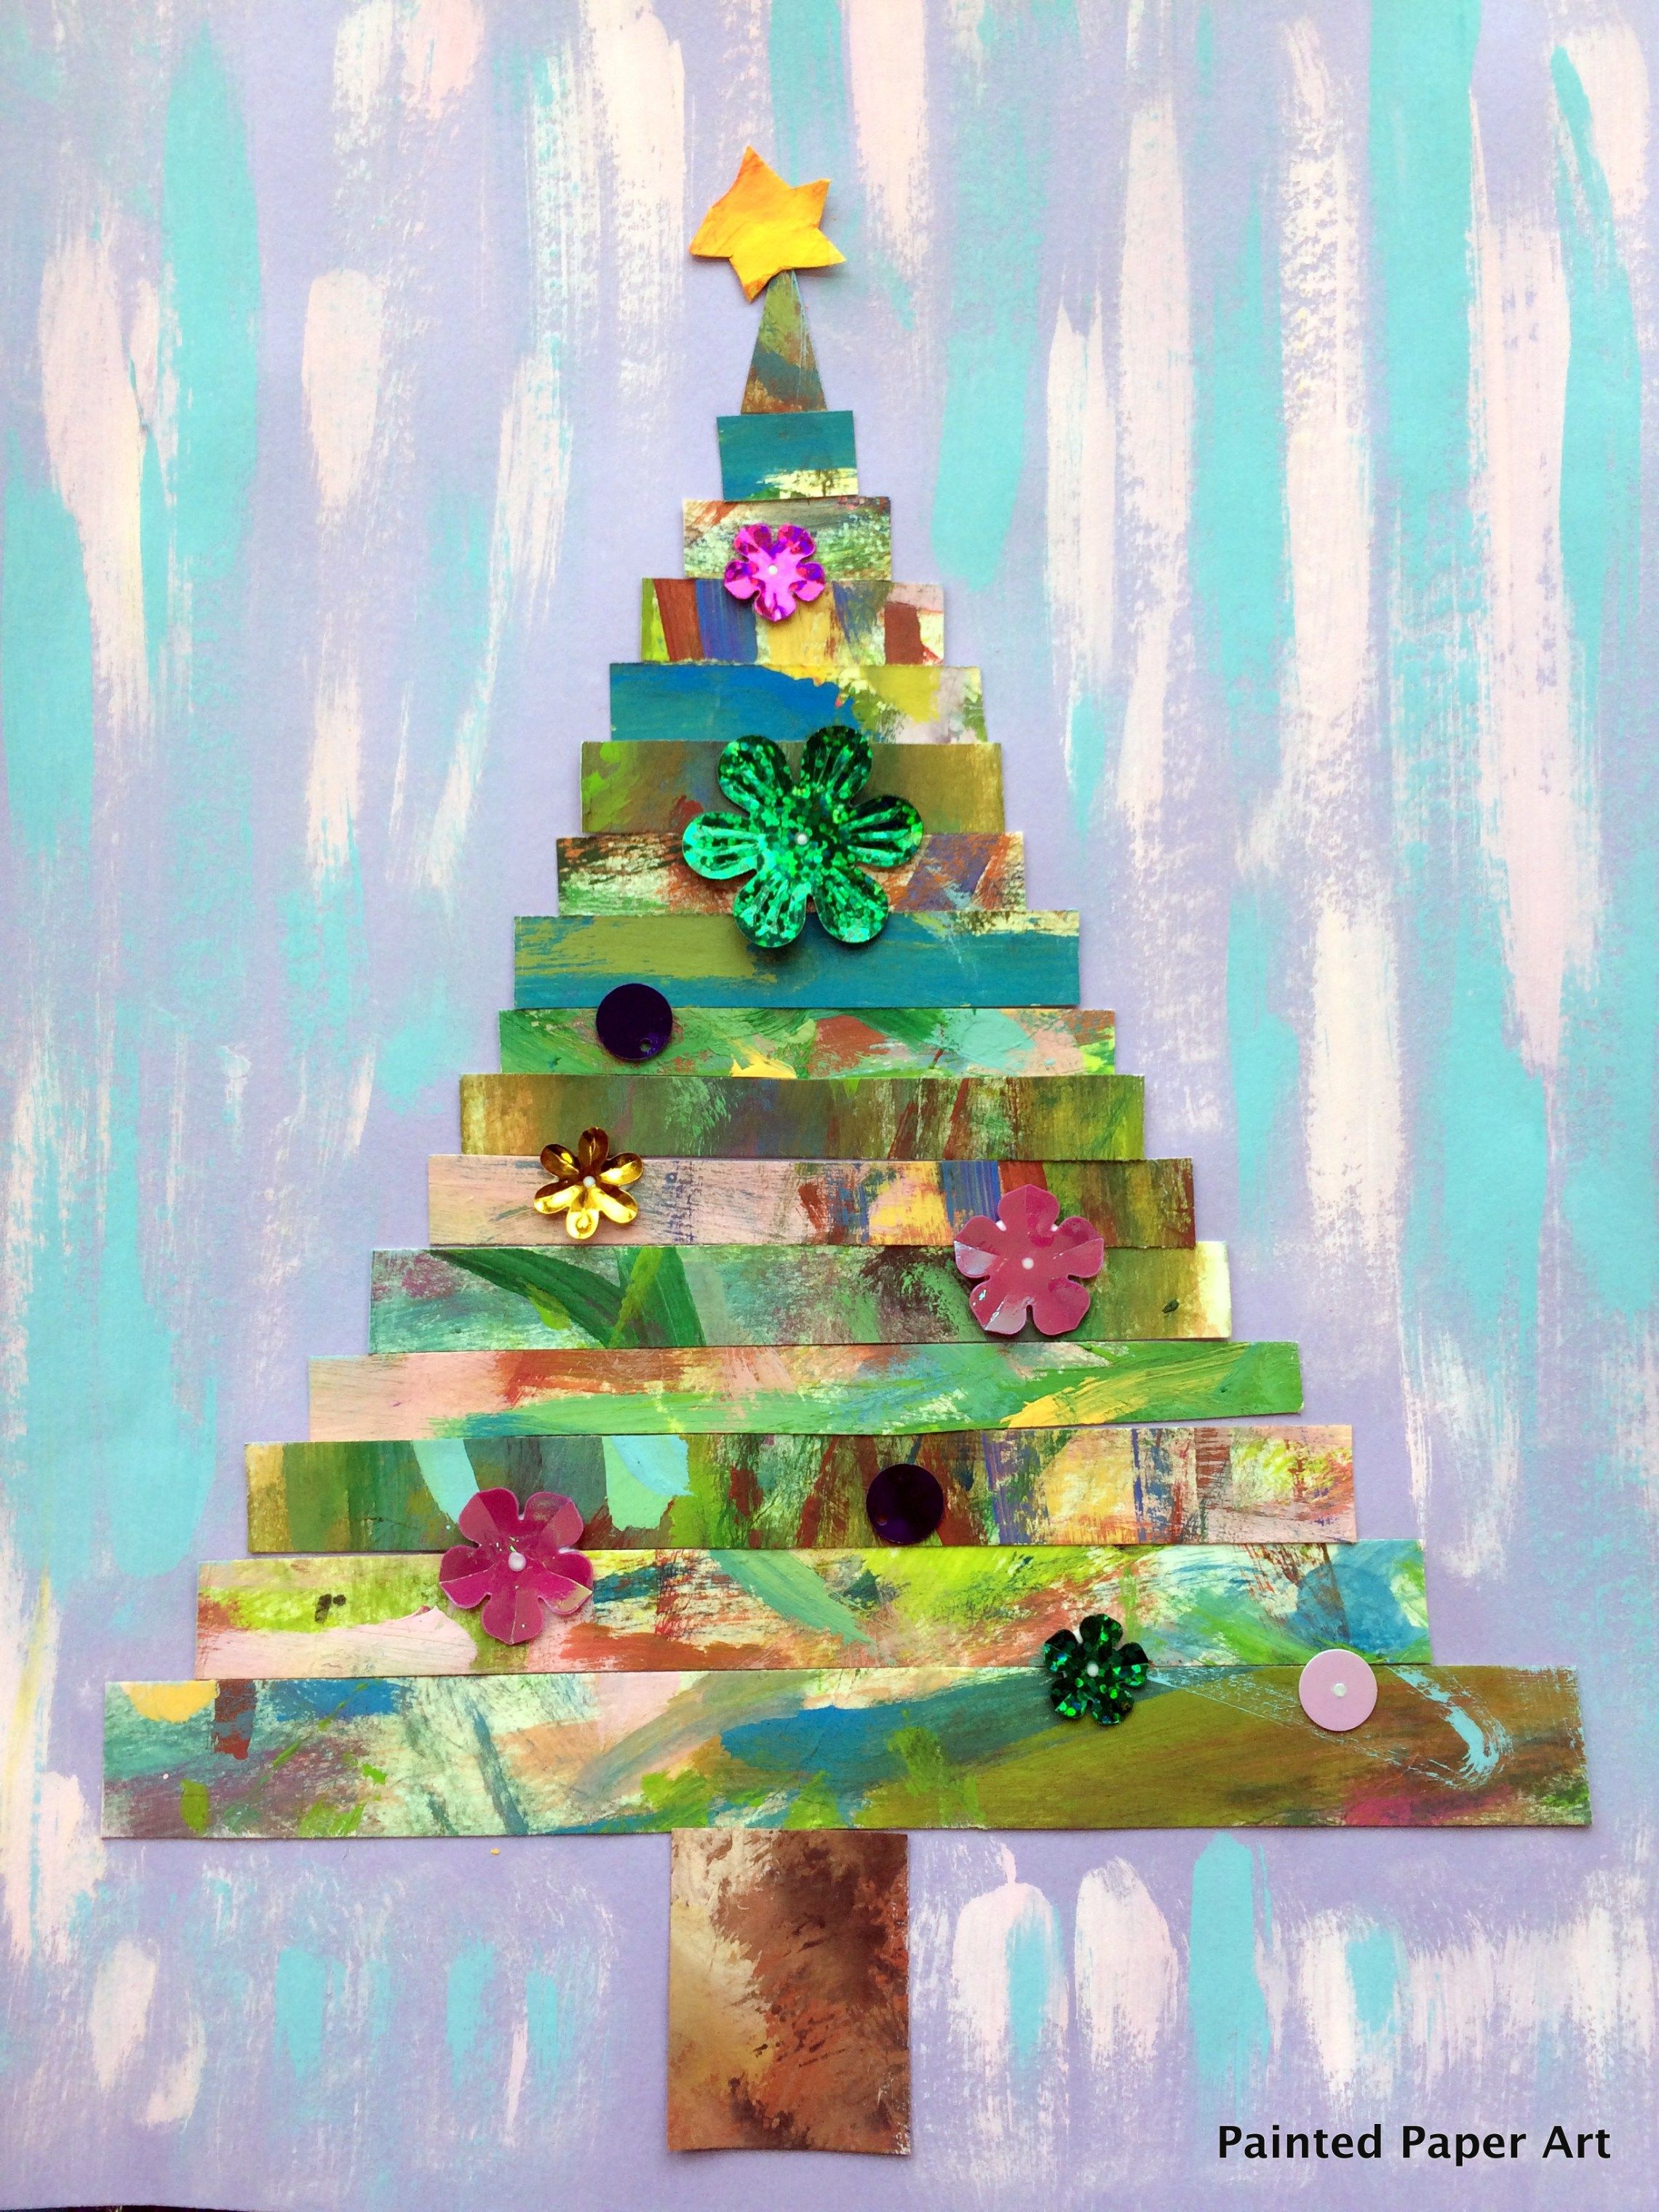 Painted Paper Art Holiday Entertaining Decor Crafts Ideas